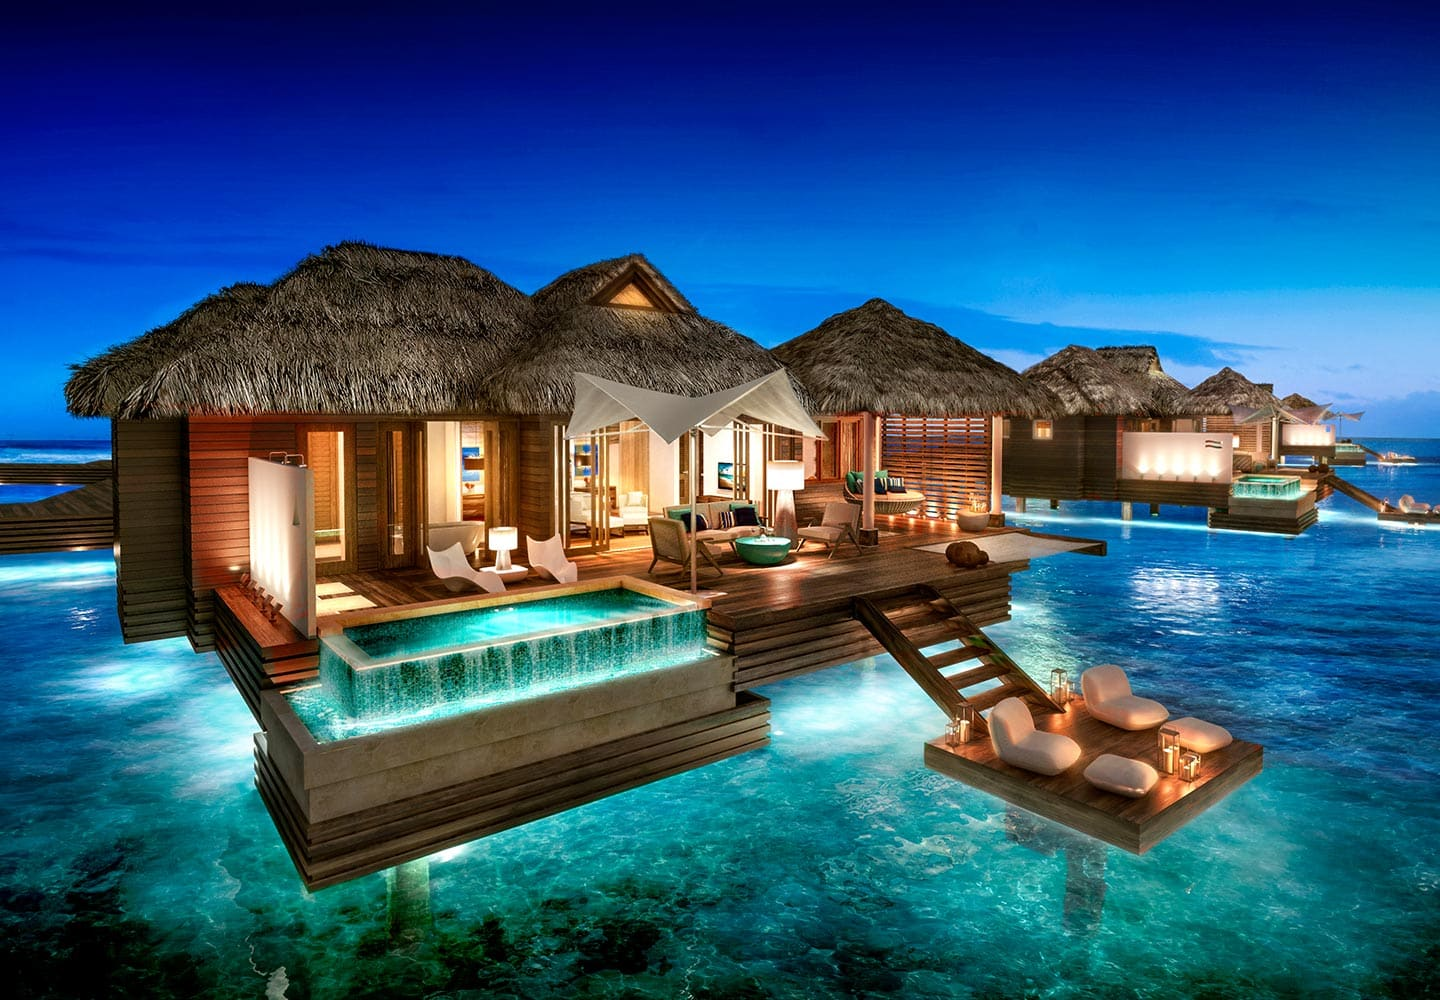 night view of the ultra-luxurious over-the-water bungalows at Sandals Royal Caribbean resort in Jamaica, all inclusive adults only vacation packages